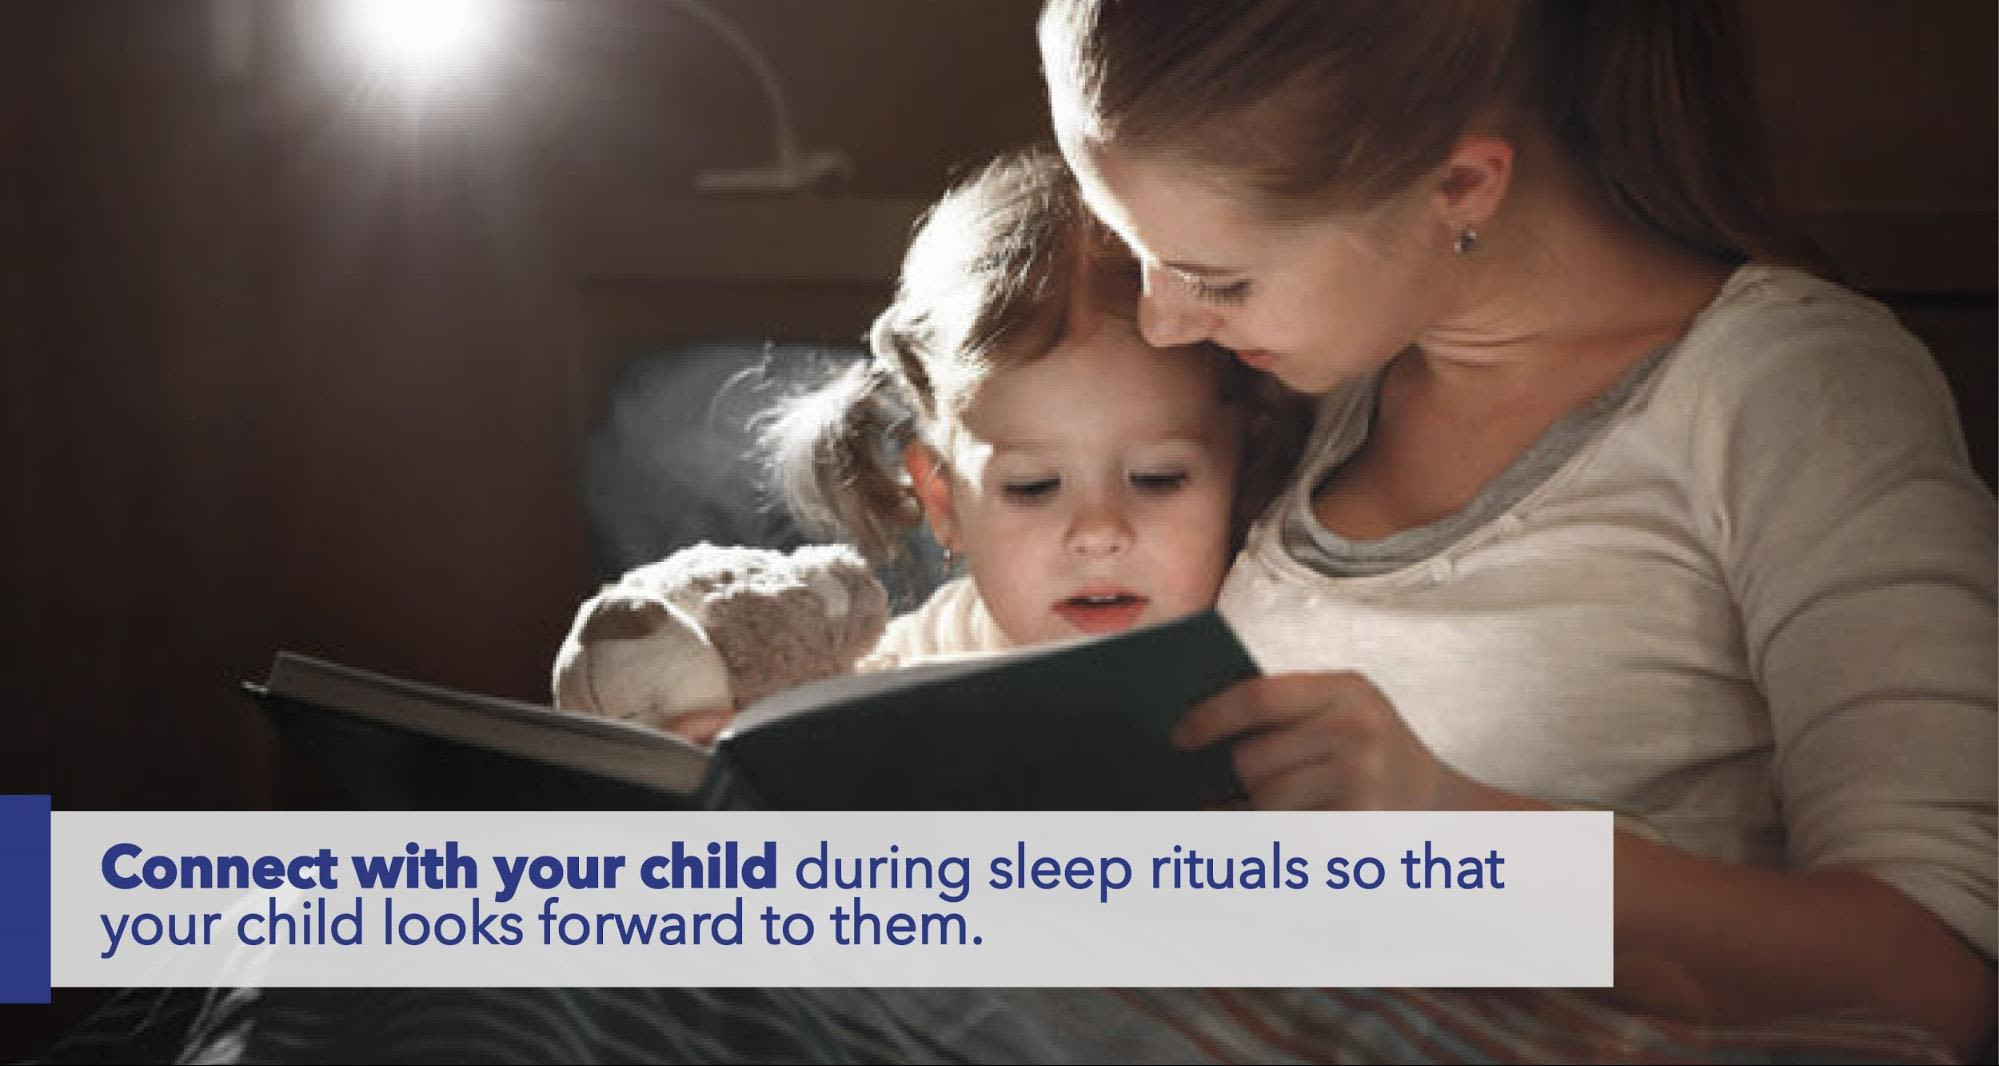 Connect with your child during sleep rituals so that your child looks forward to them.